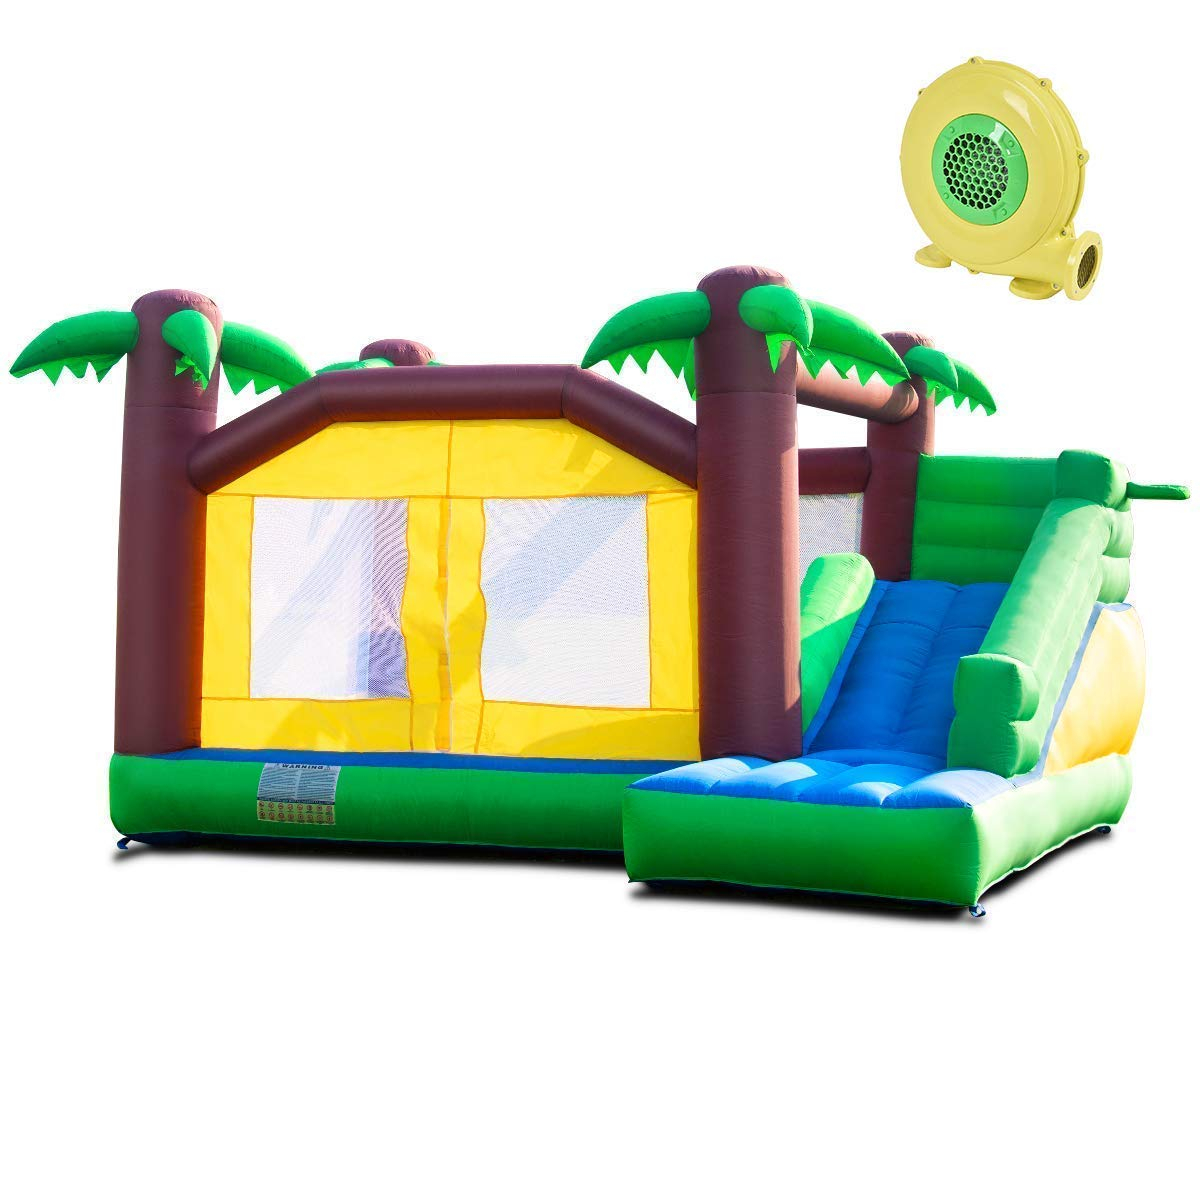 Costzon Inflatable Jungle Bounce House Jump and Slide Bouncer Castle (Bouncer with 950W Blower) by Costzon (Image #1)